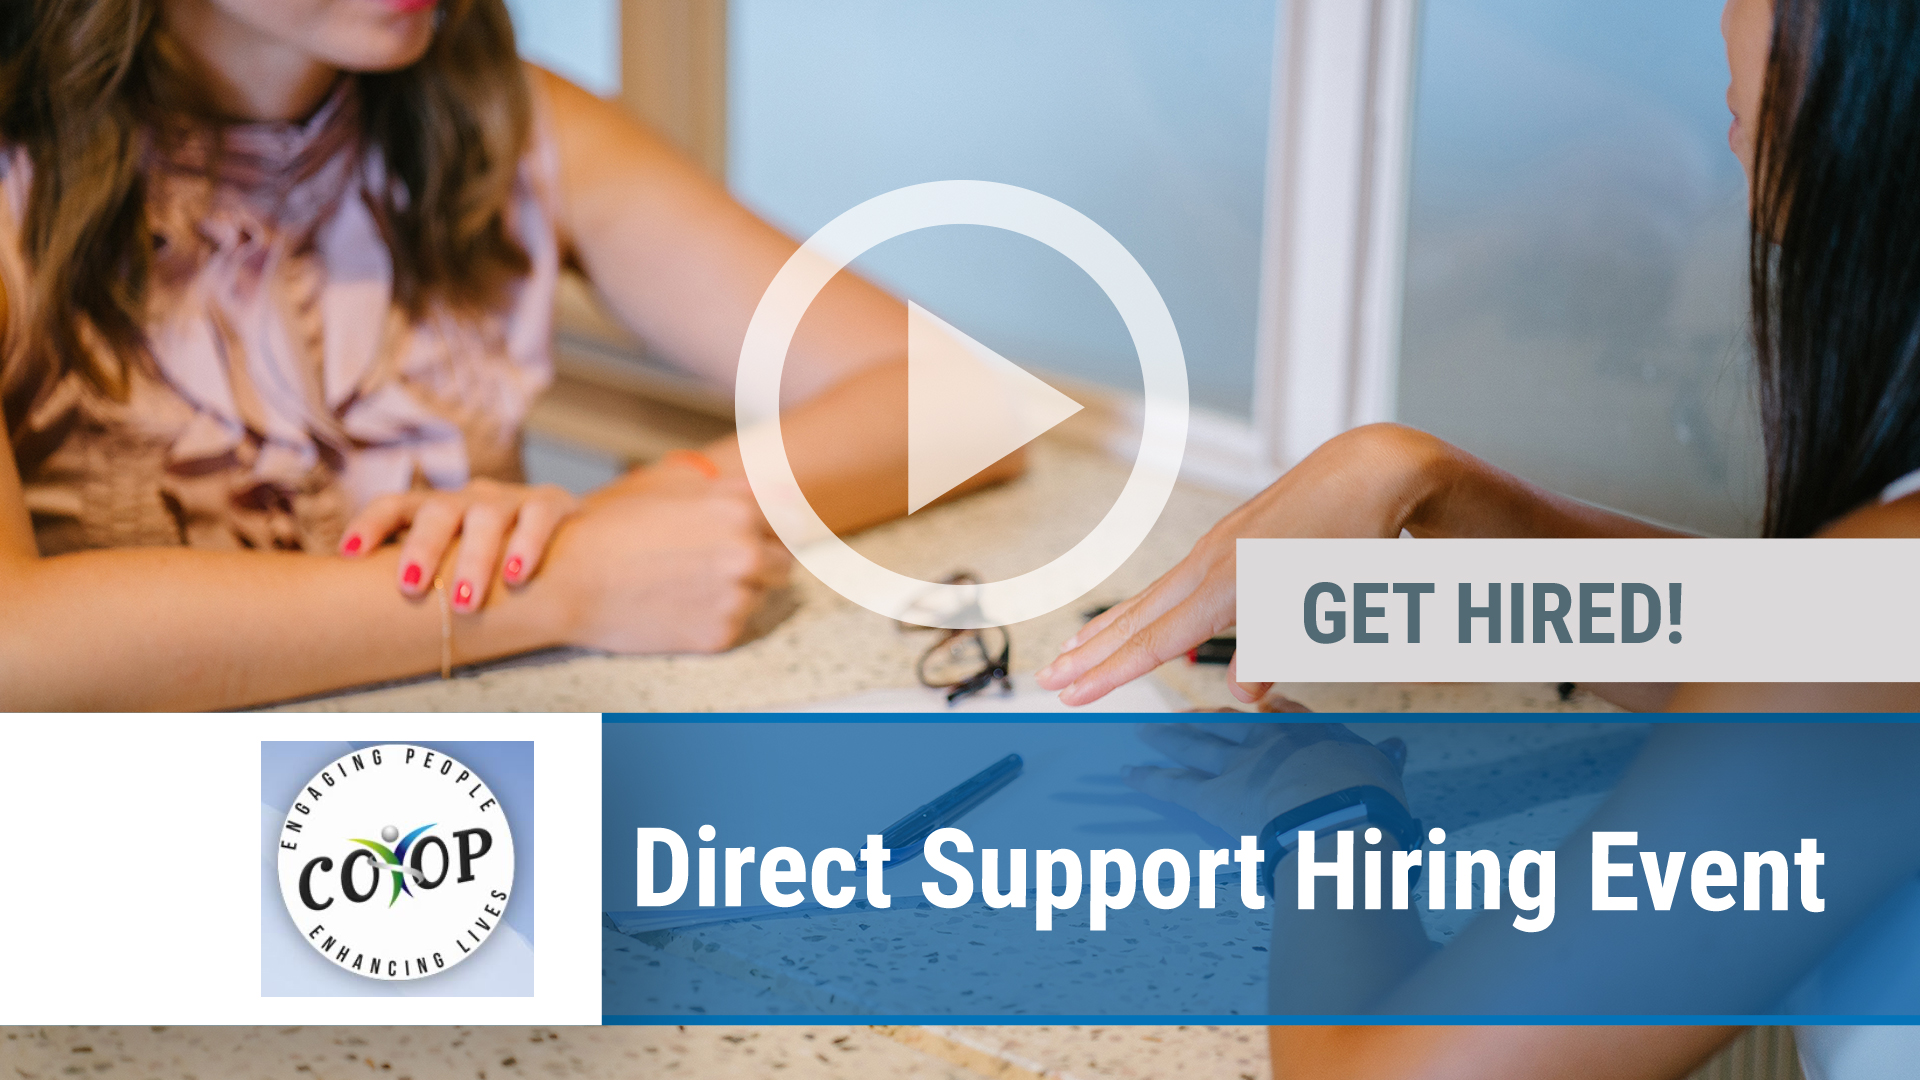 Watch our careers video for available job opening Direct Support Hiring Event in Dighton, MA